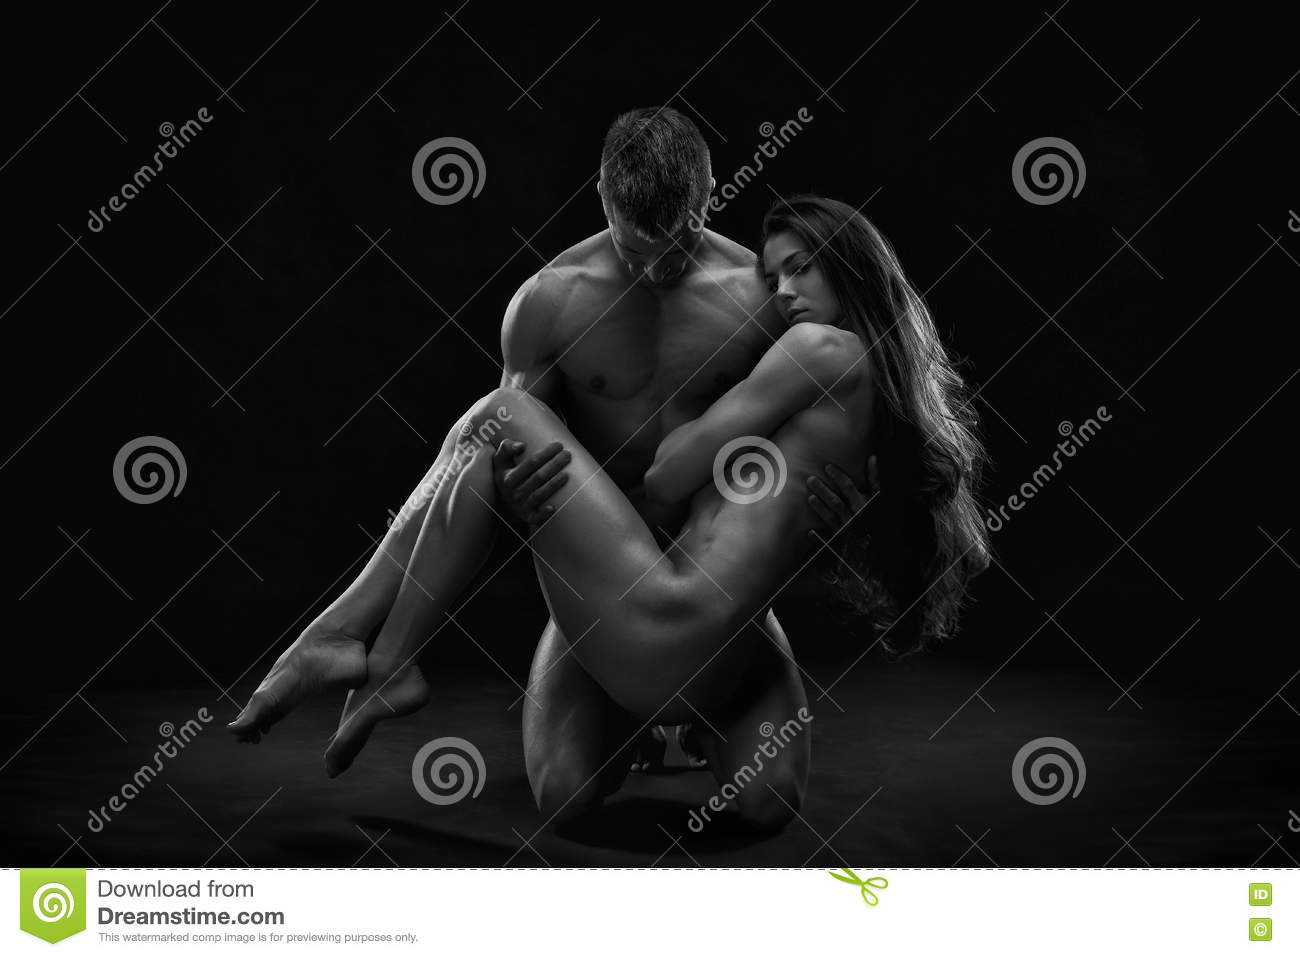 Nude Couples Black White 48